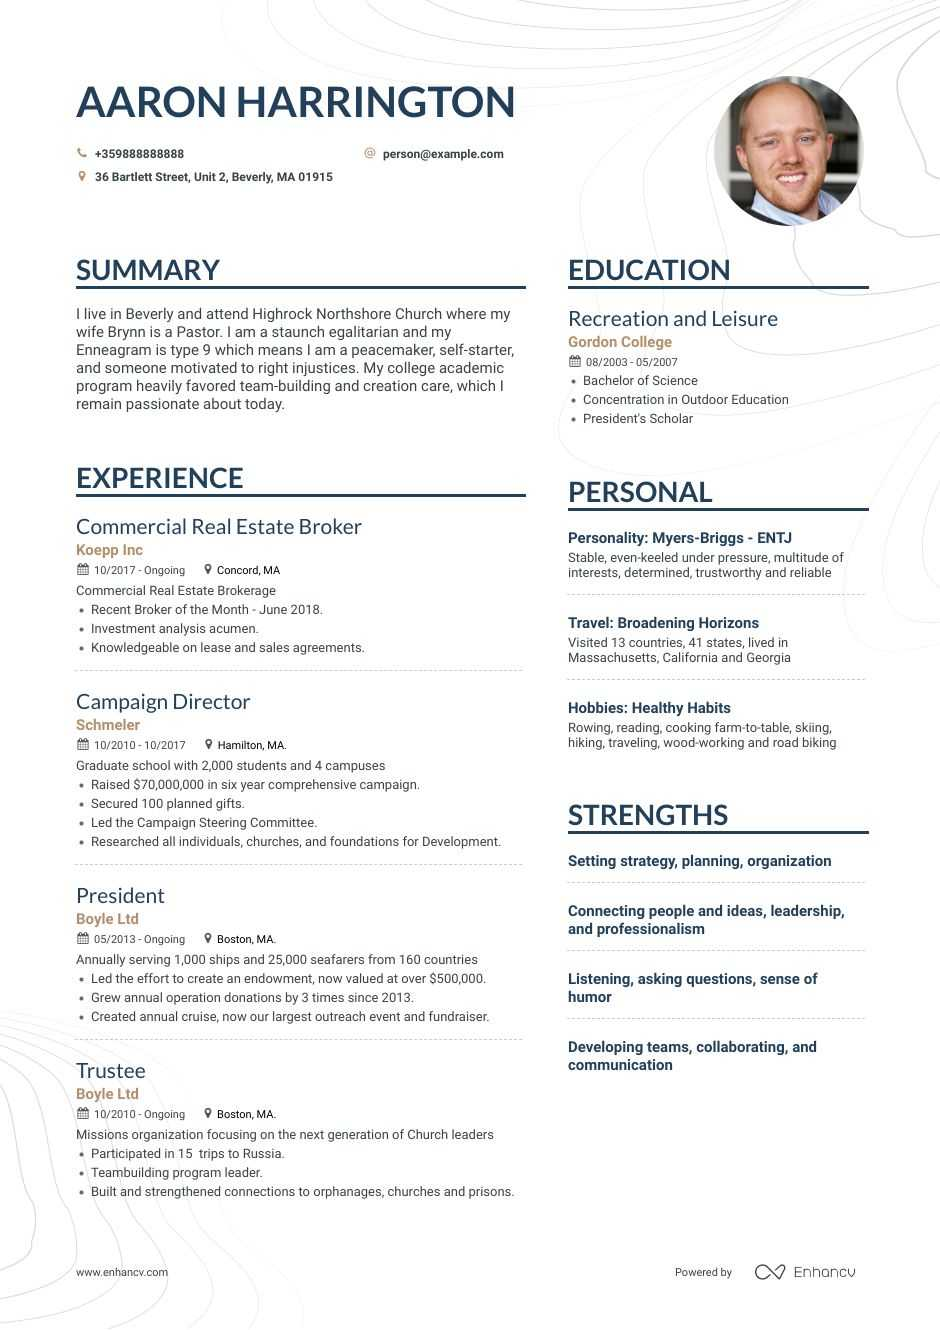 estate resume examples and skills you need to get hired commercial creative professional Resume Commercial Real Estate Resume